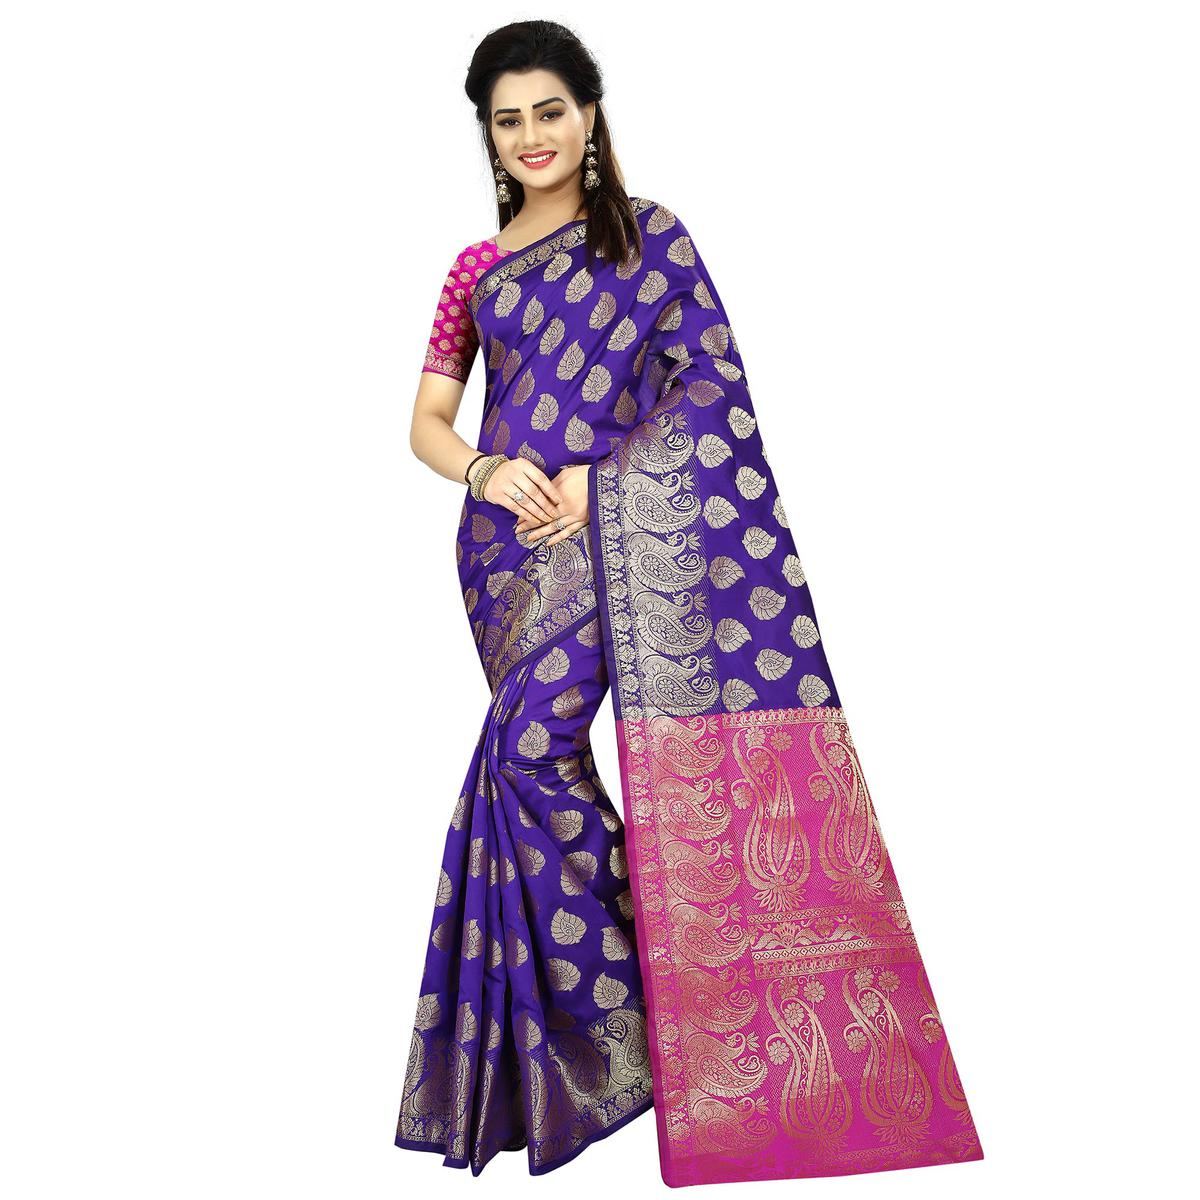 Engrossing Purple Colored Festive Wear Woven Jacquard Art Silk Saree